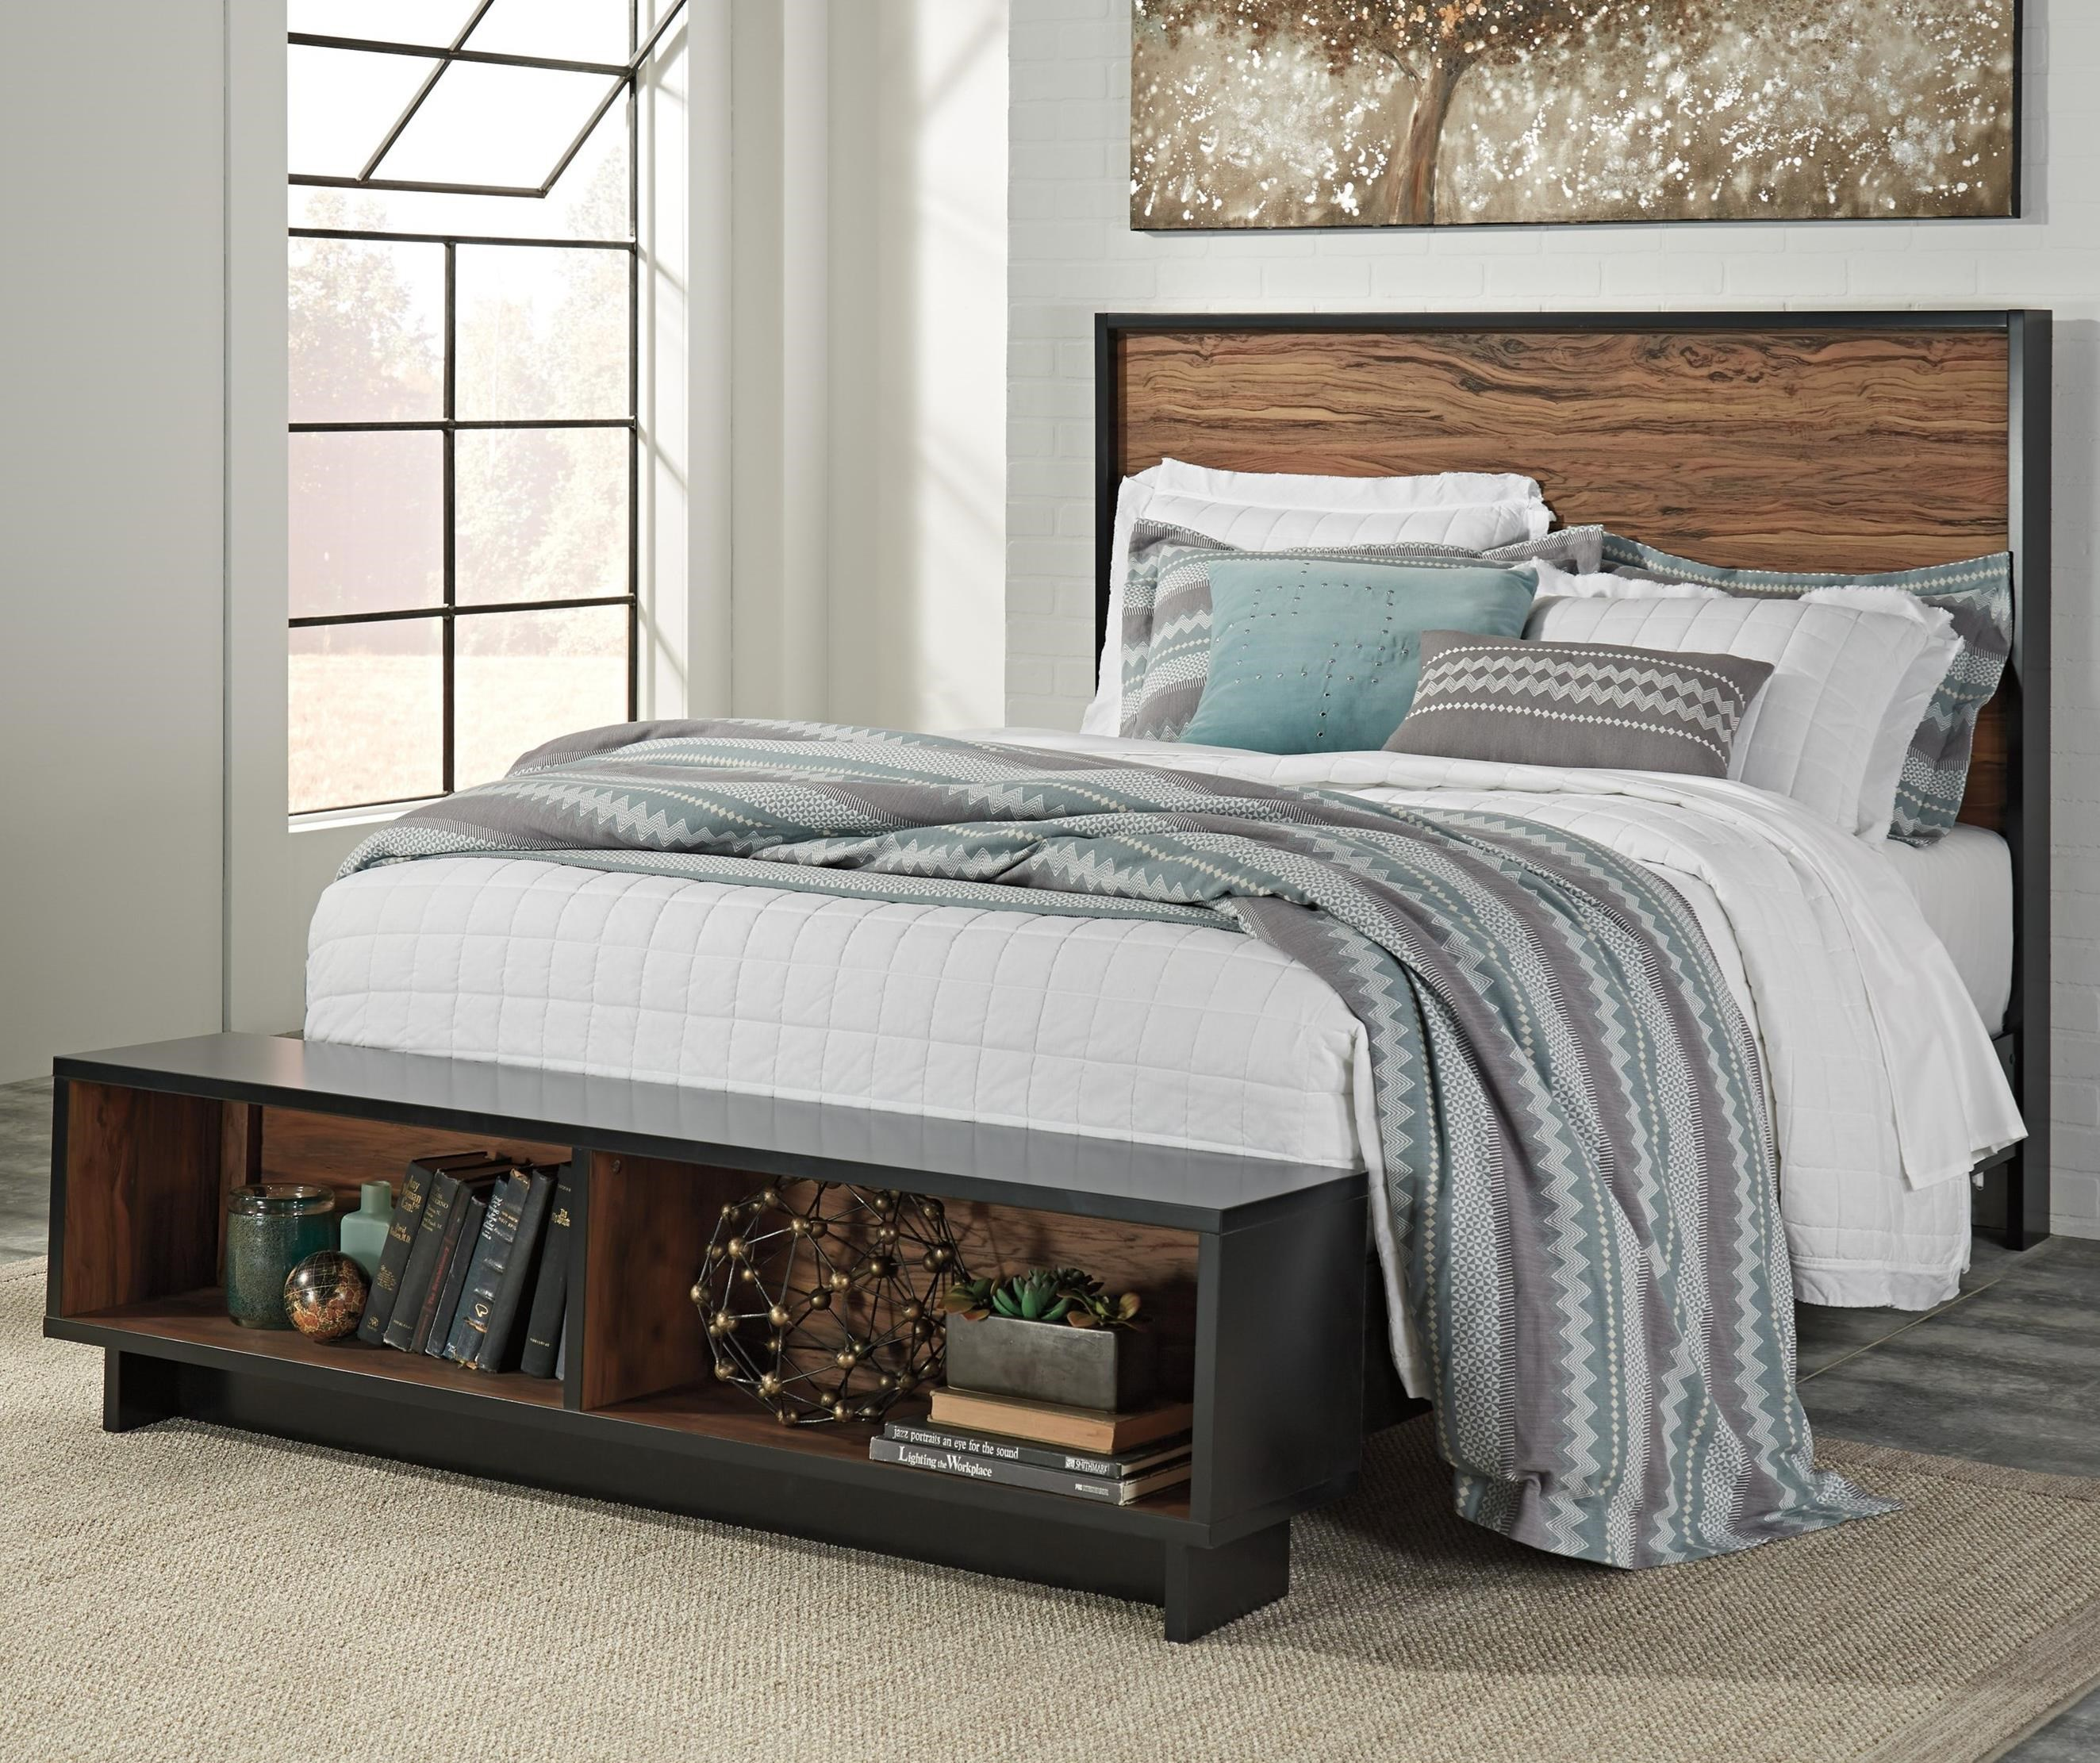 signature design by ashley stavani queen platform bed w bench footboard item number